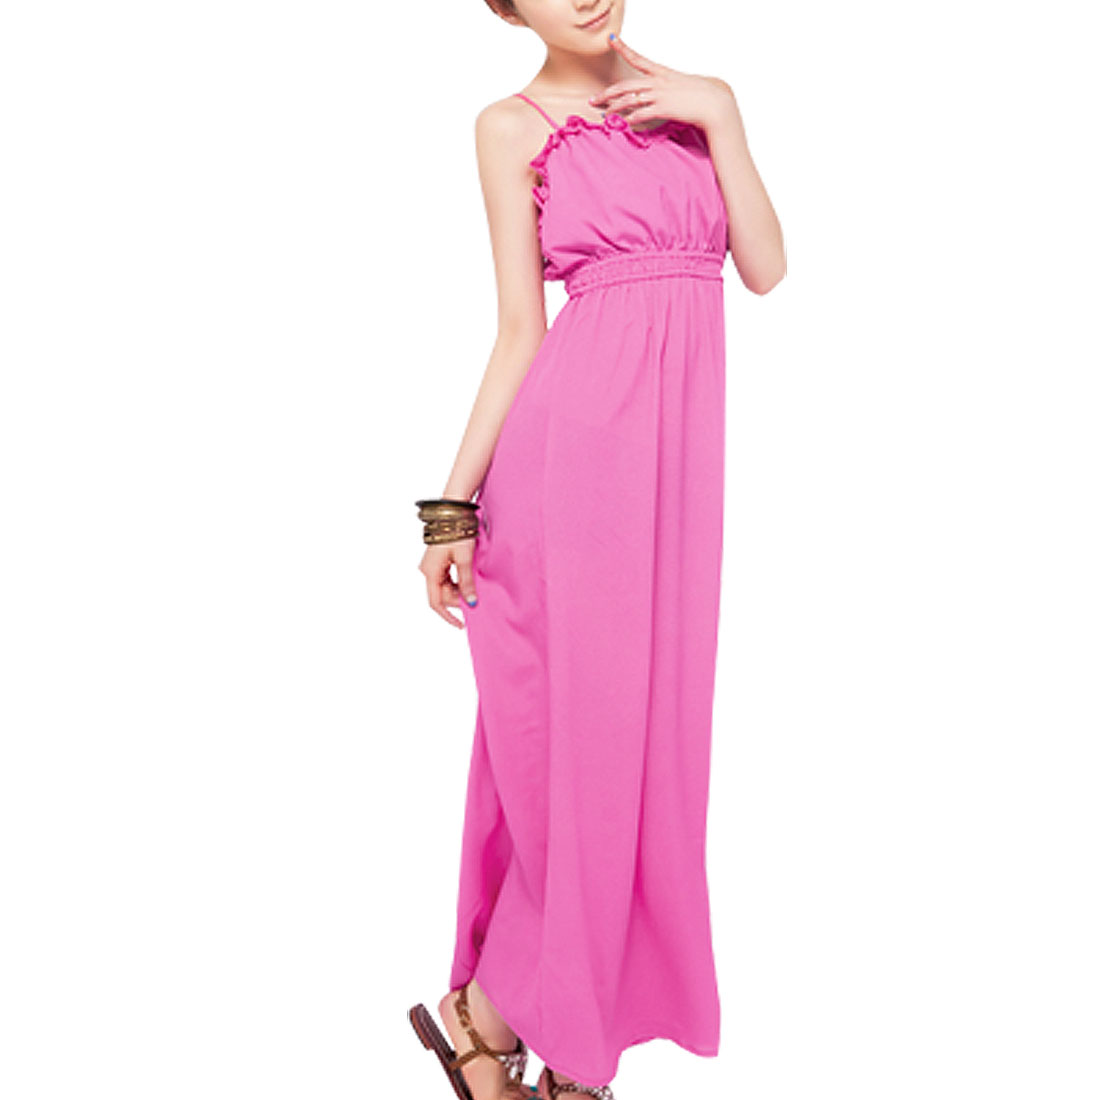 Pink Ruffled Elastic Back Adjustable Strap Dress XS for Lady